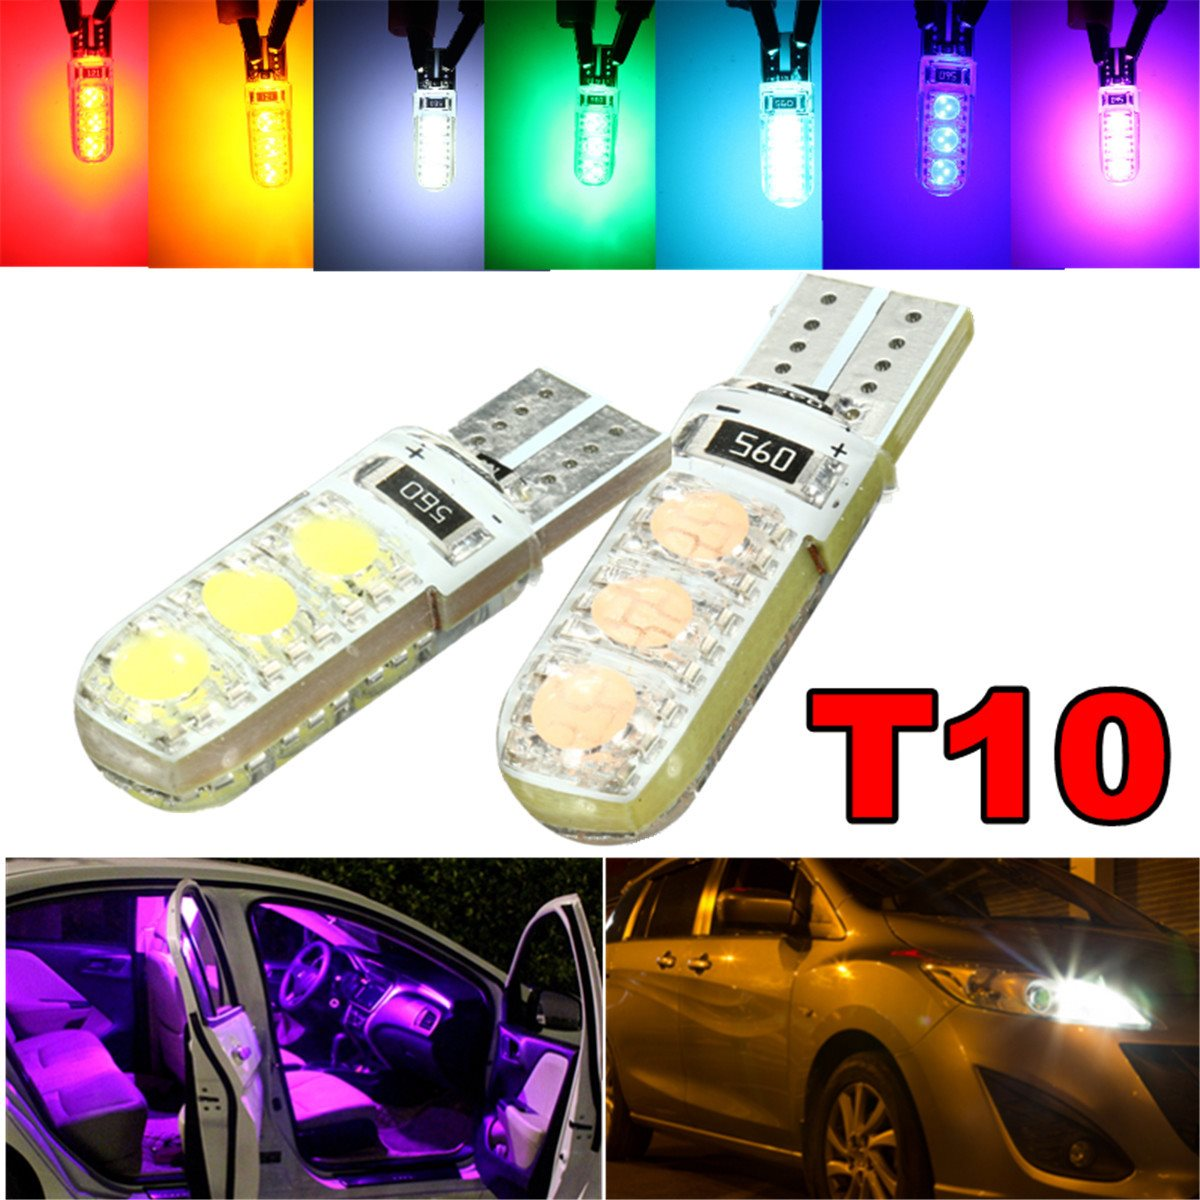 T10 194 501 W5W Motorcycle Car Silicone LED Side License Plate Light Wedge Lamp Pink Green Ice Blue Red Yellow White(China (Mainland))